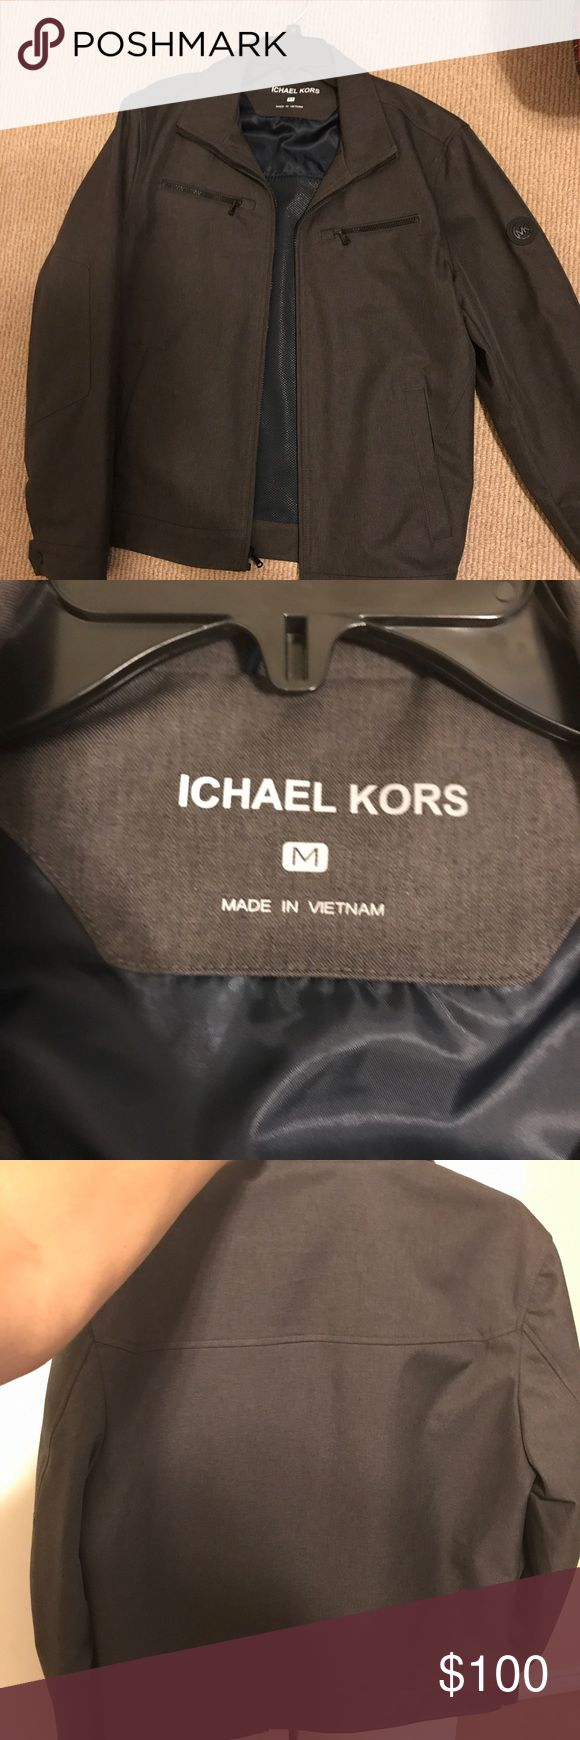 Mk Men's Jacket Mk Men's Jacket: Was a gift given to me, I've only wore 5 times and as you can see the neck tag can be rubbed off easily. Size M in Men's Michael Kors Jackets & Coats Bomber & Varsity